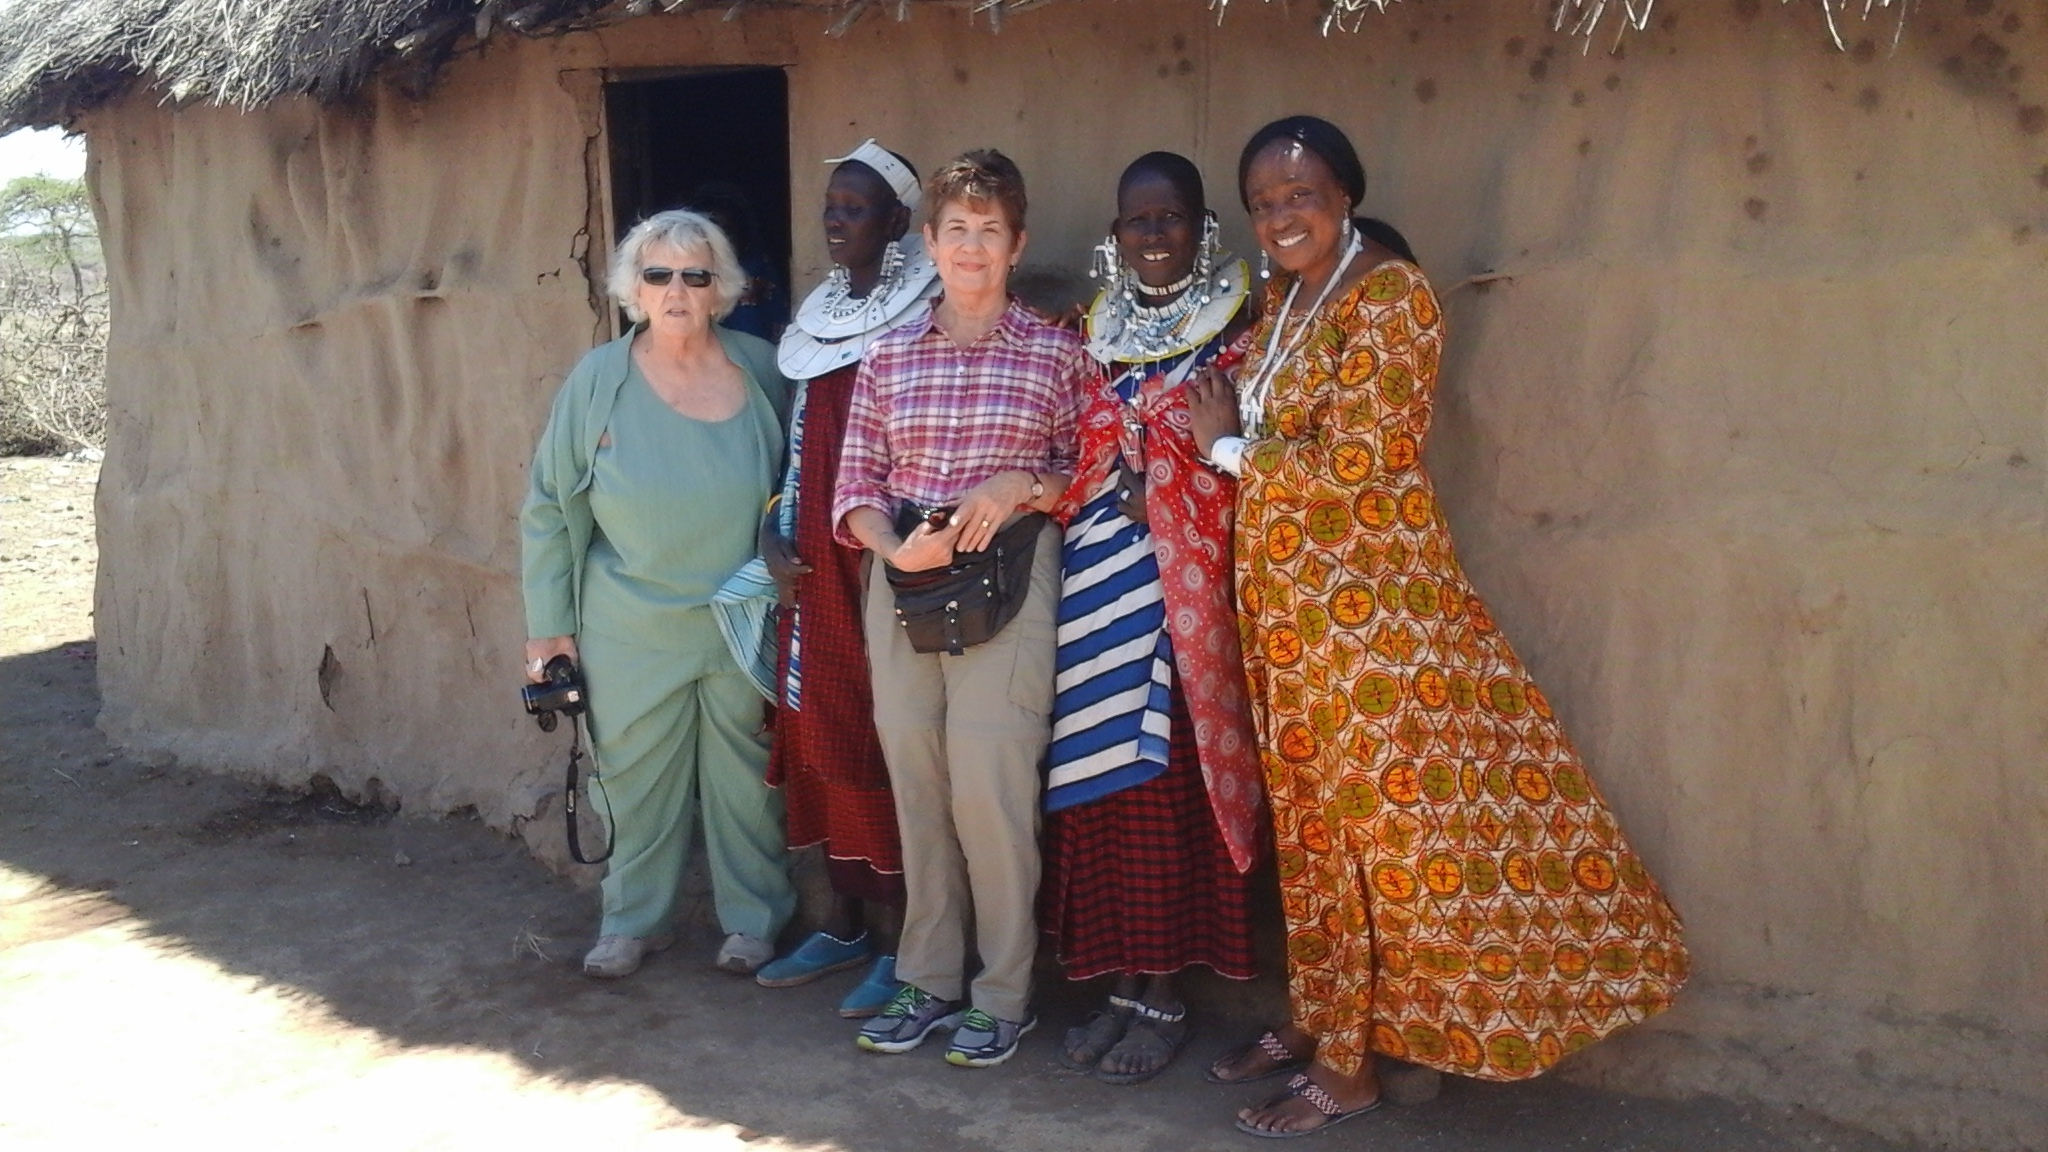 Our clients Judy and Kathy with our friend Margaret at the Maasai village.